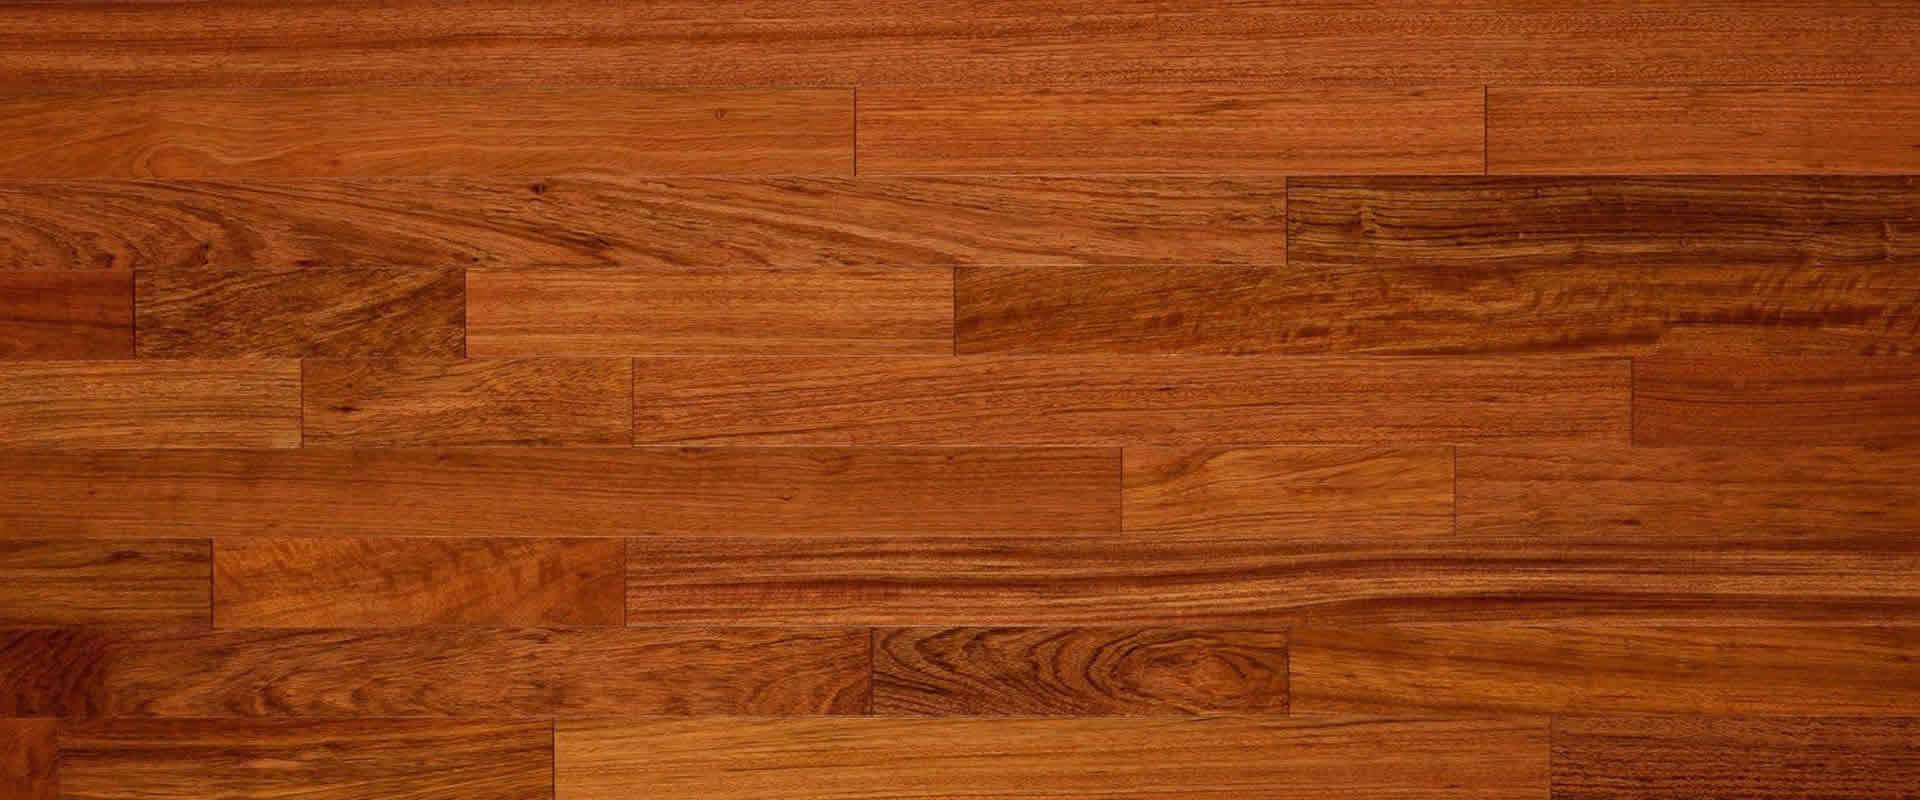 Hardwood floor installation repair refinishing ny nj ct pa for Floors floors floors nj